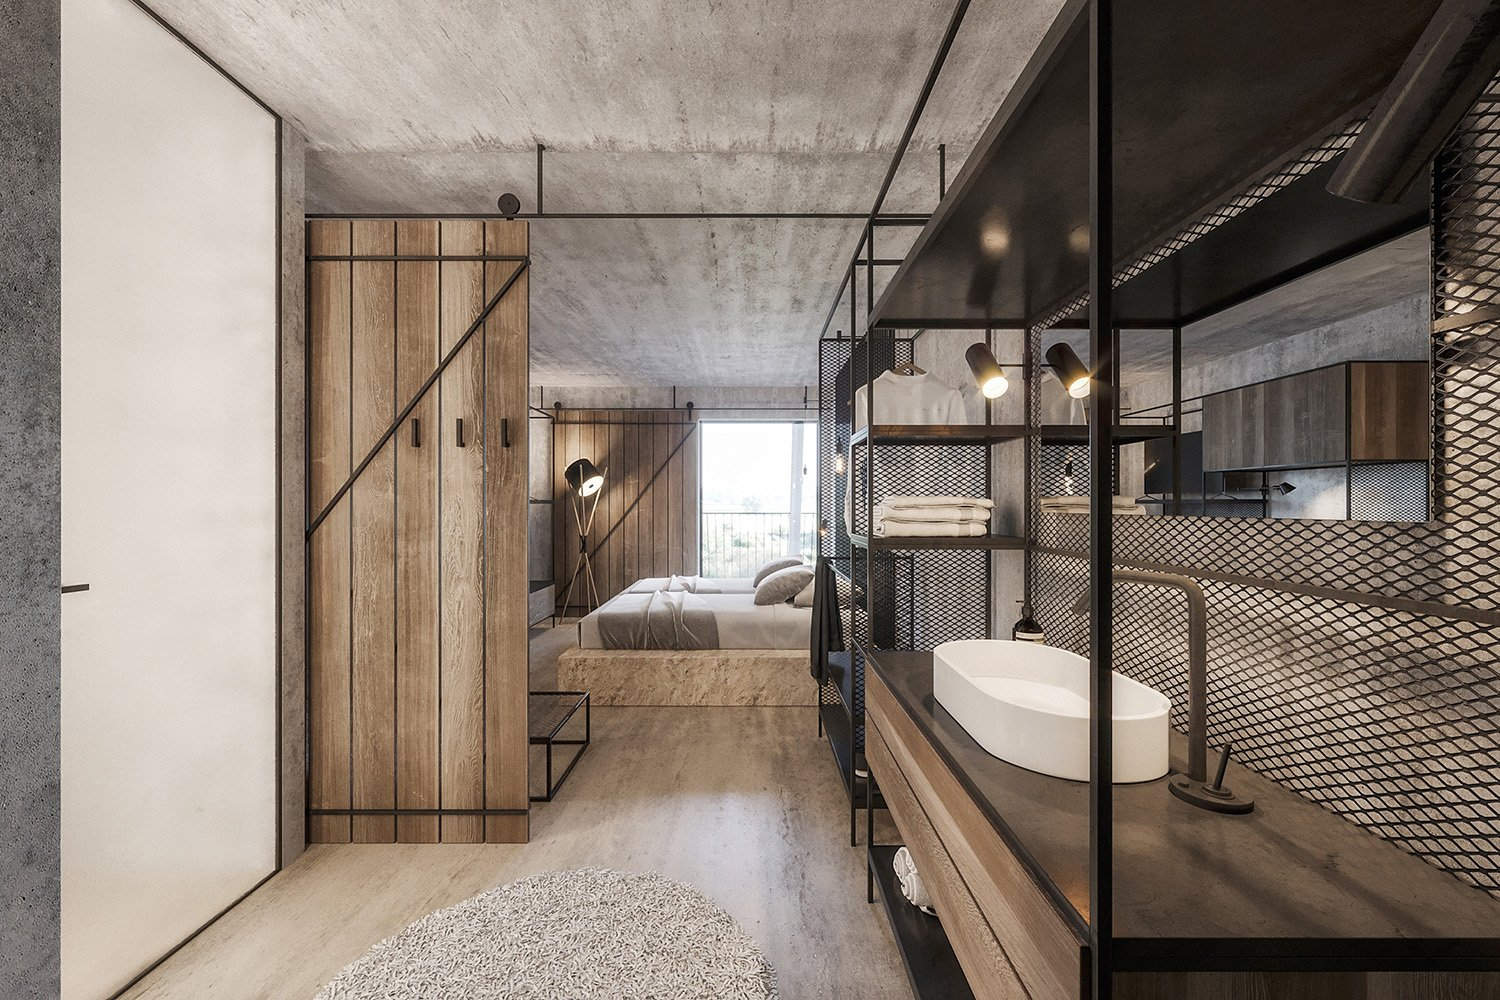 enota maestoso hotel & spa 09 Studio Spacer (visualisations)}